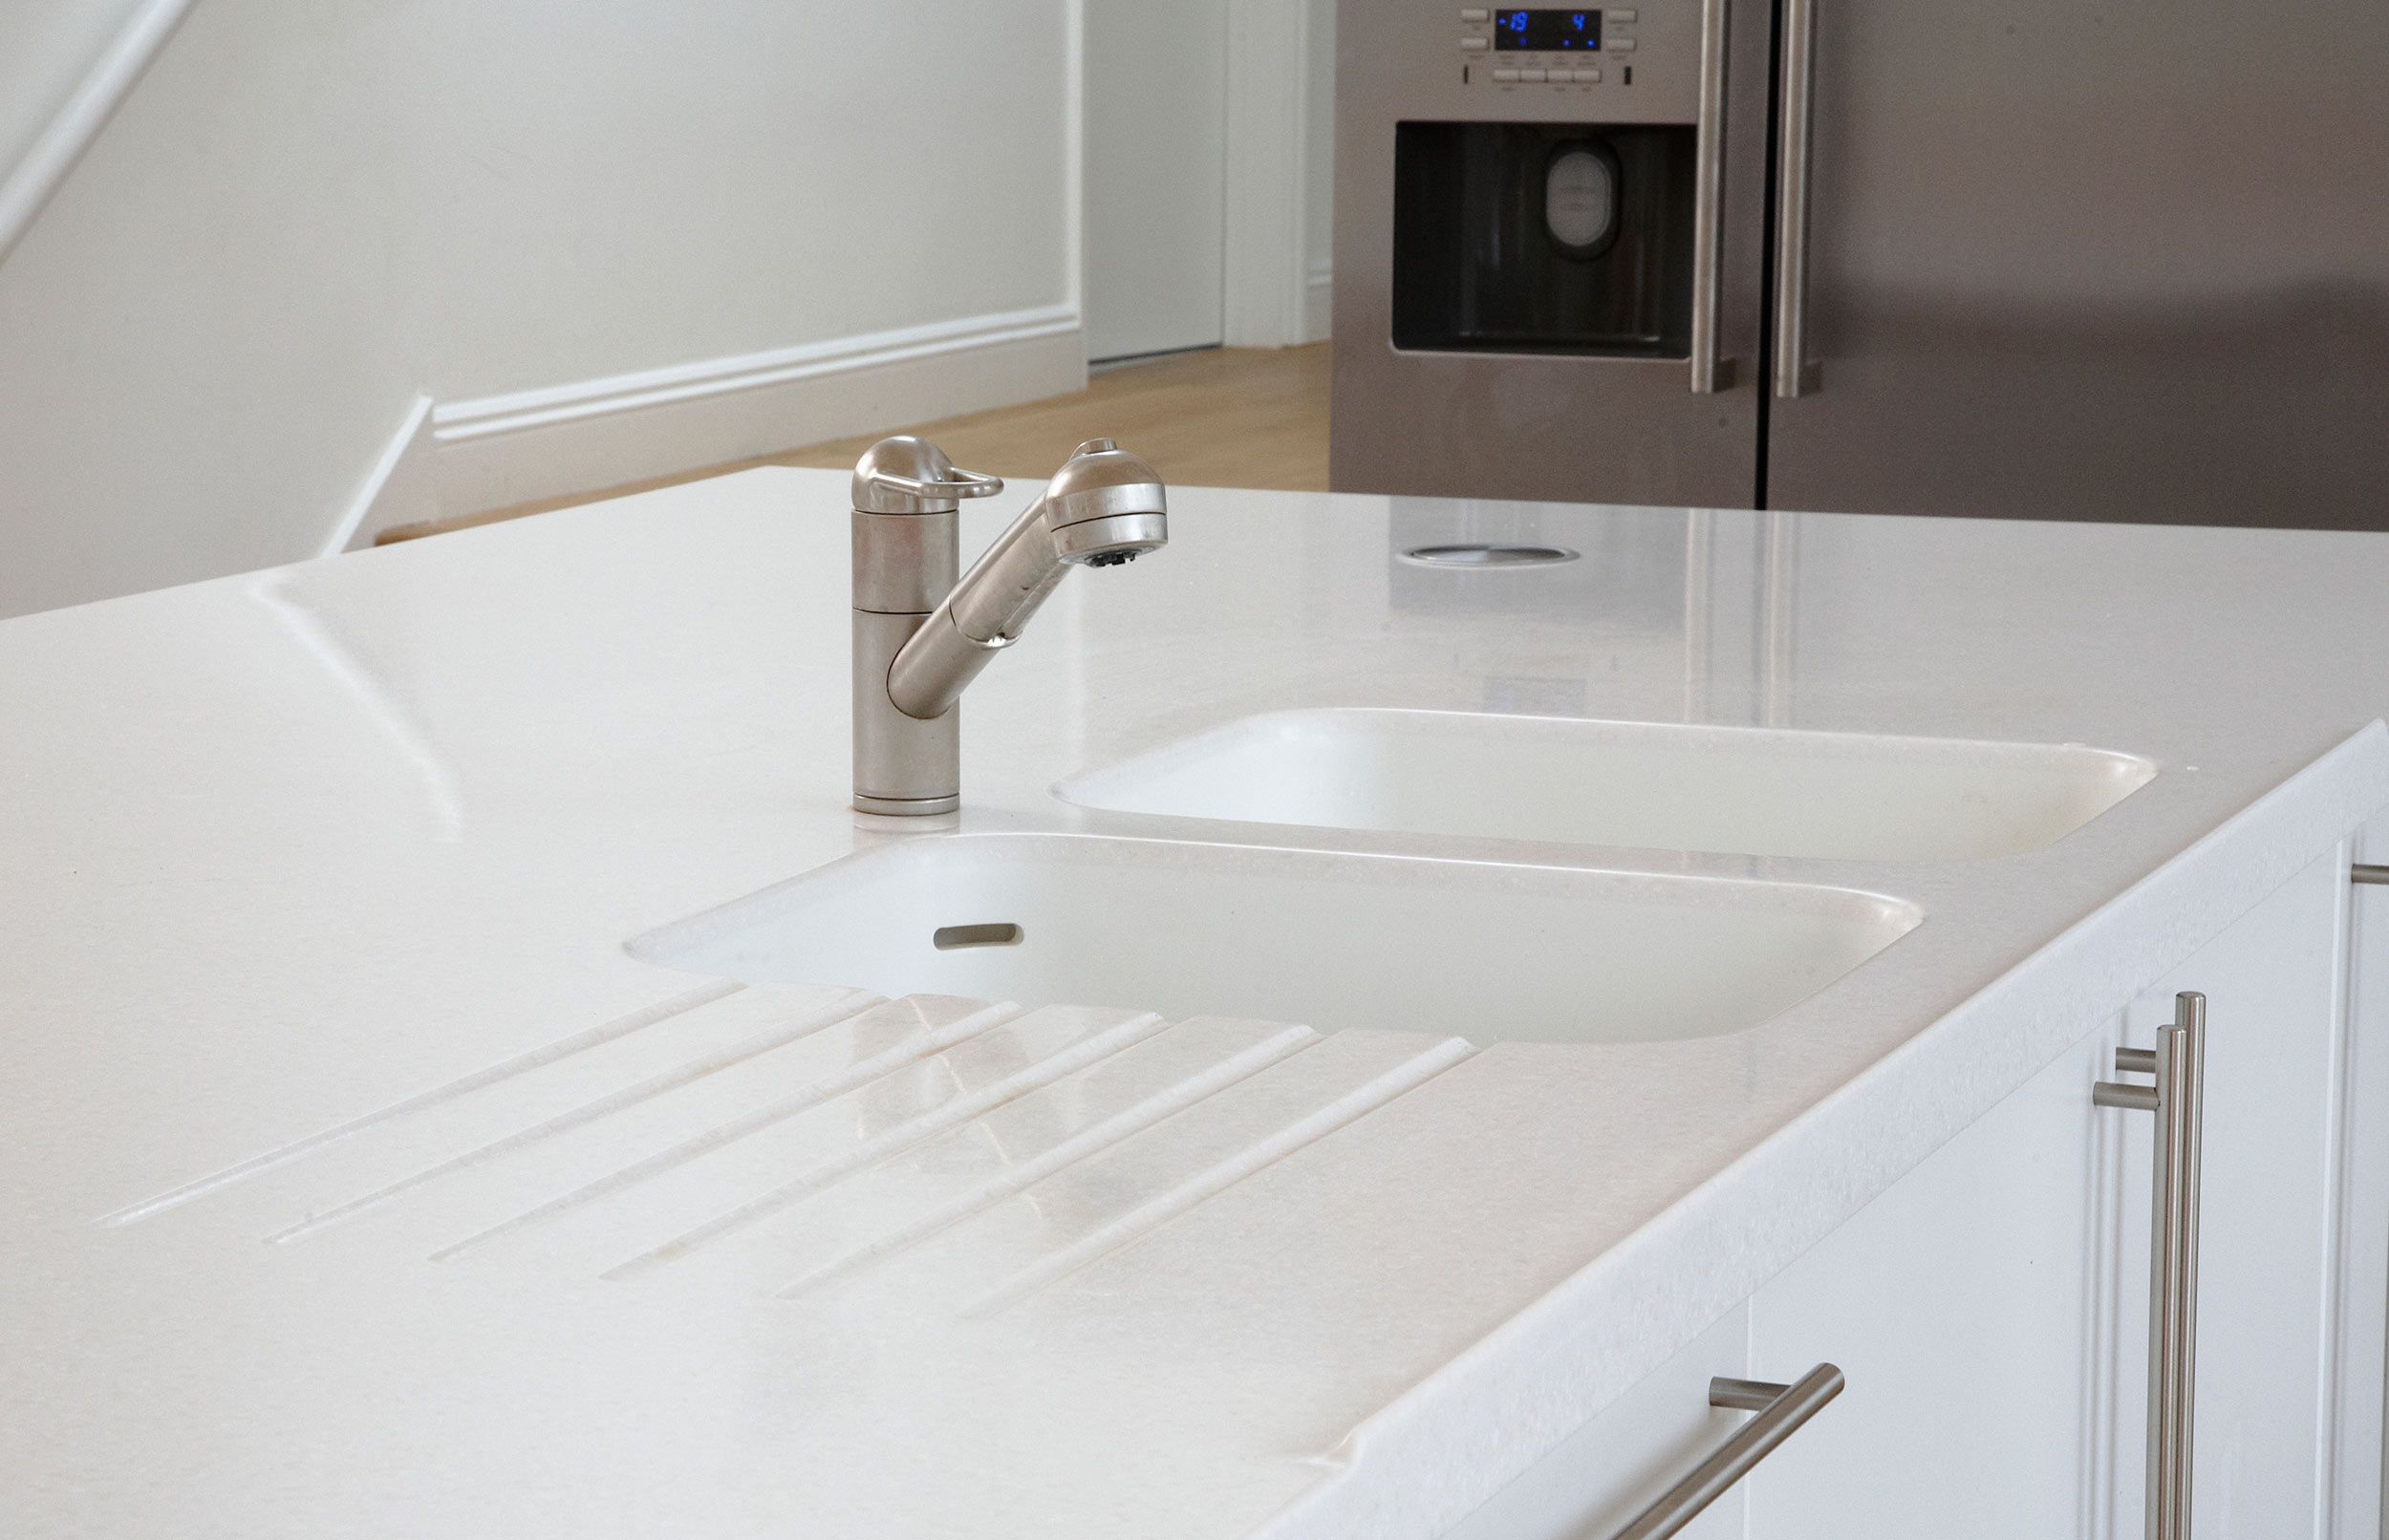 Contemporary Bespoke Kitchen Island with Tap, Sink and Preparation Area